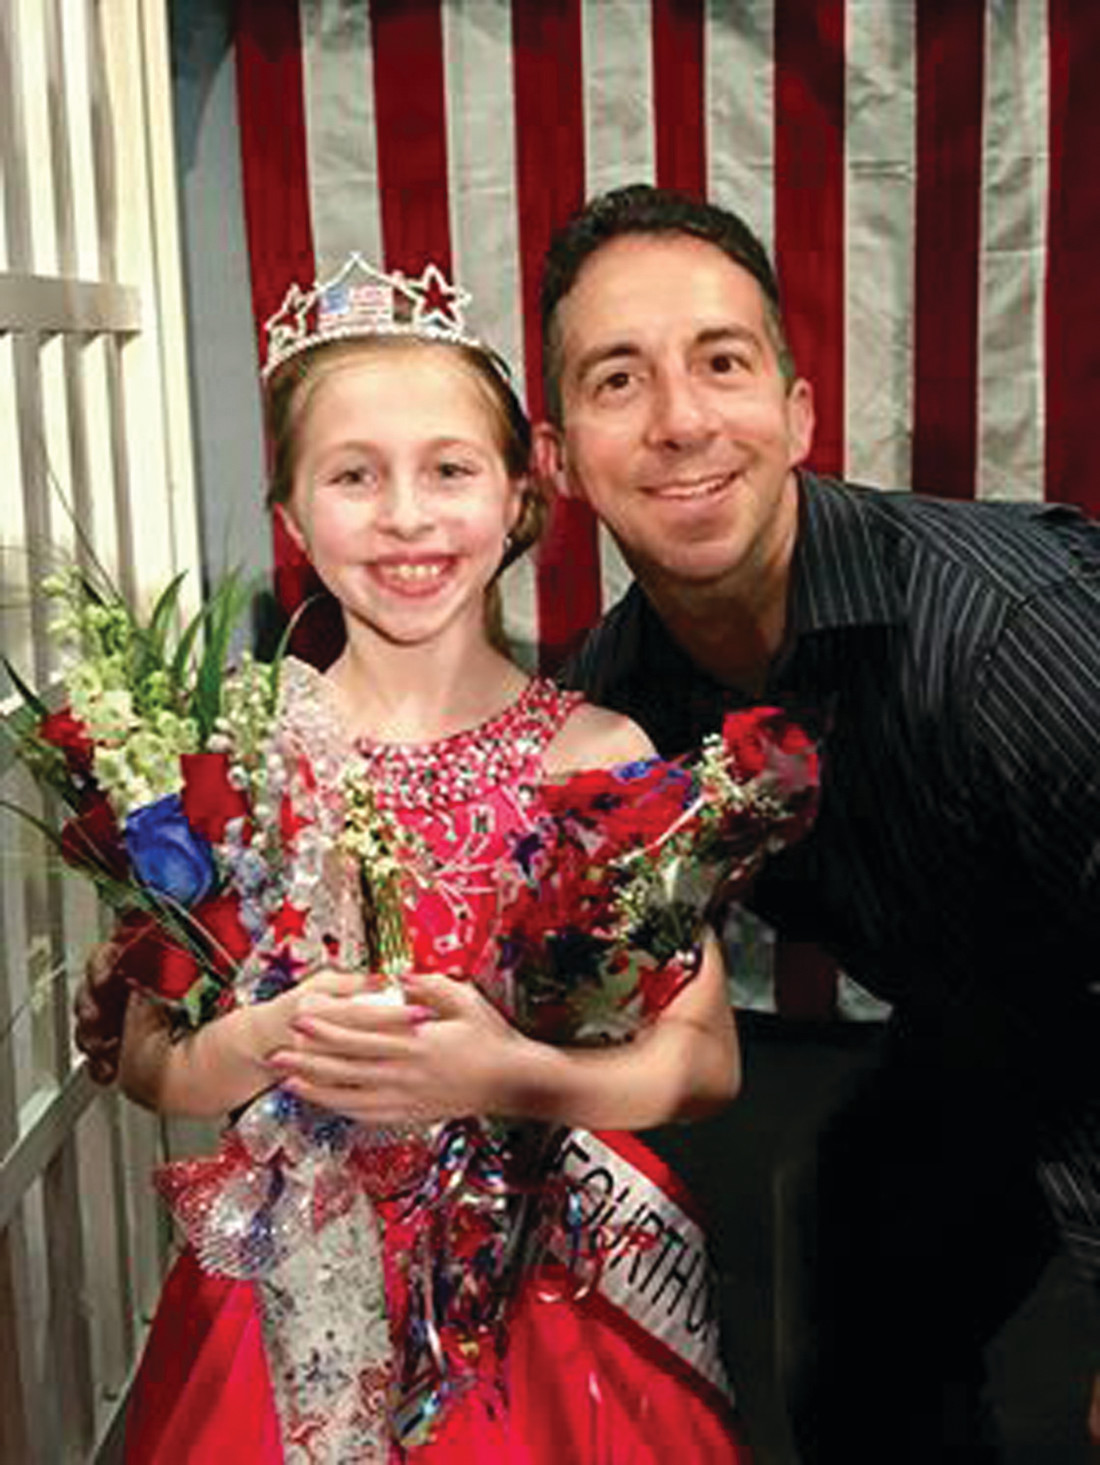 Little Miss Fourth Of July Cranston Herald